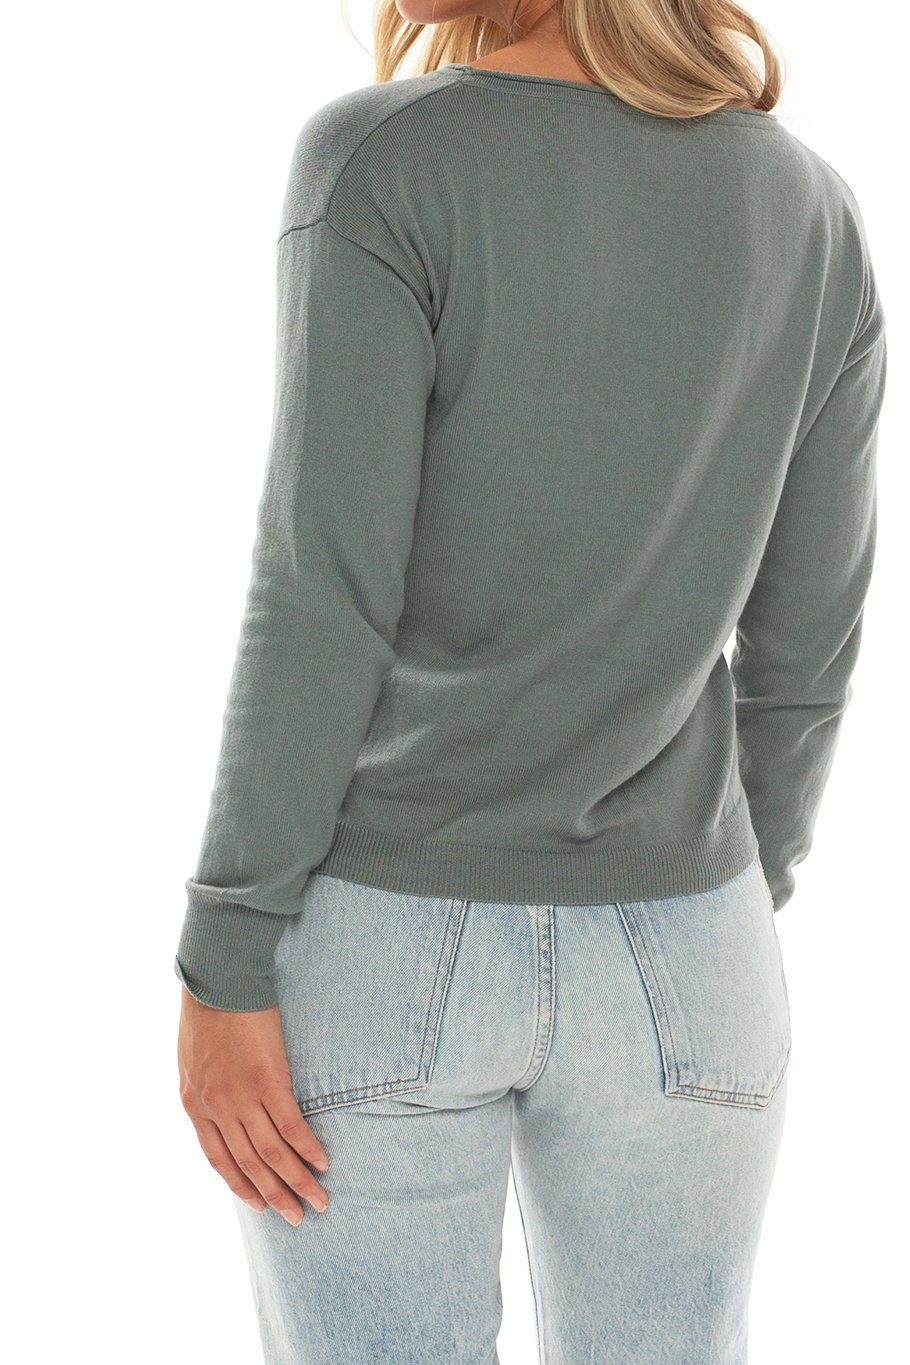 Vail U-neck Sweater - Arctic Green - Shore